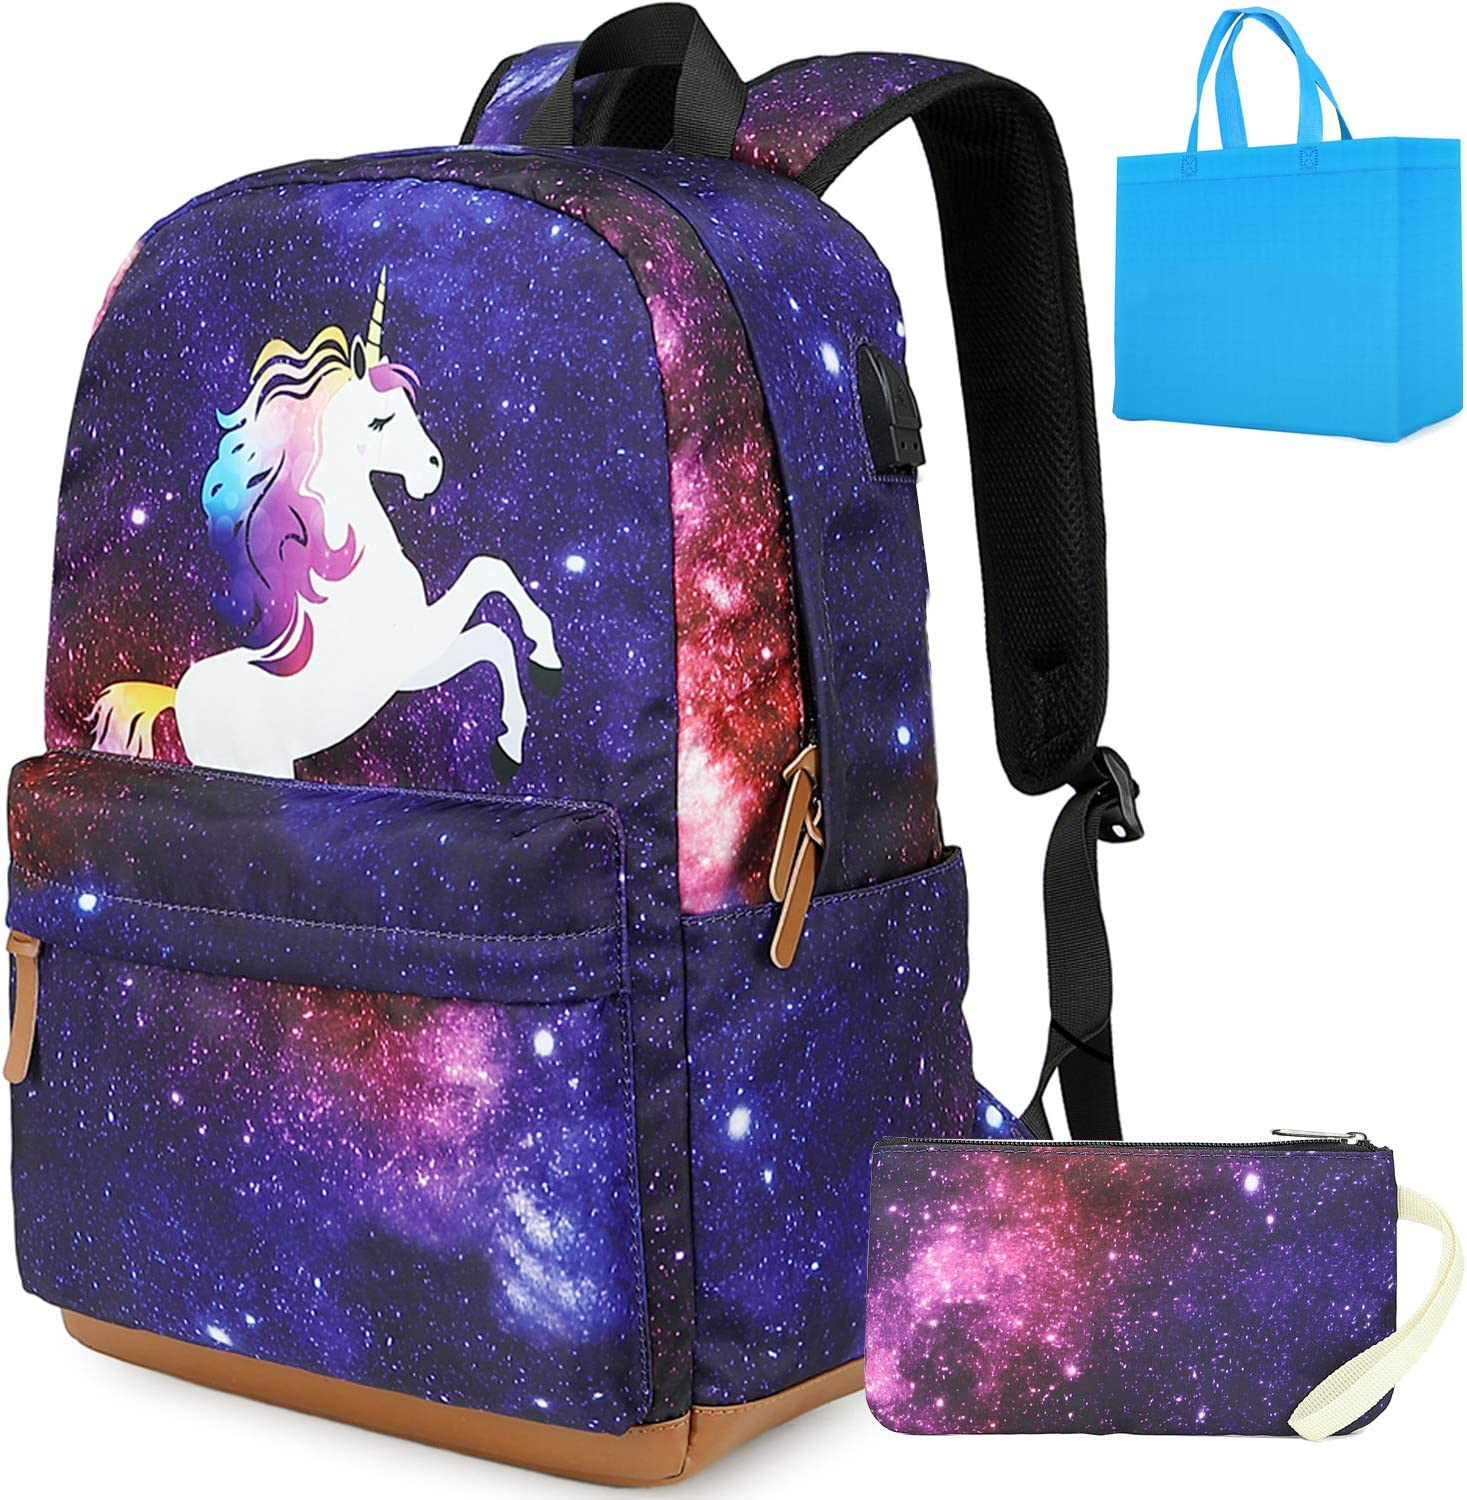 School Backpack Unicorn Laptop Bookbag with USB Charging Port Computer Backpacks Travel Camping Daypack School Bag fit 15.6 inch Laptop (Purple)